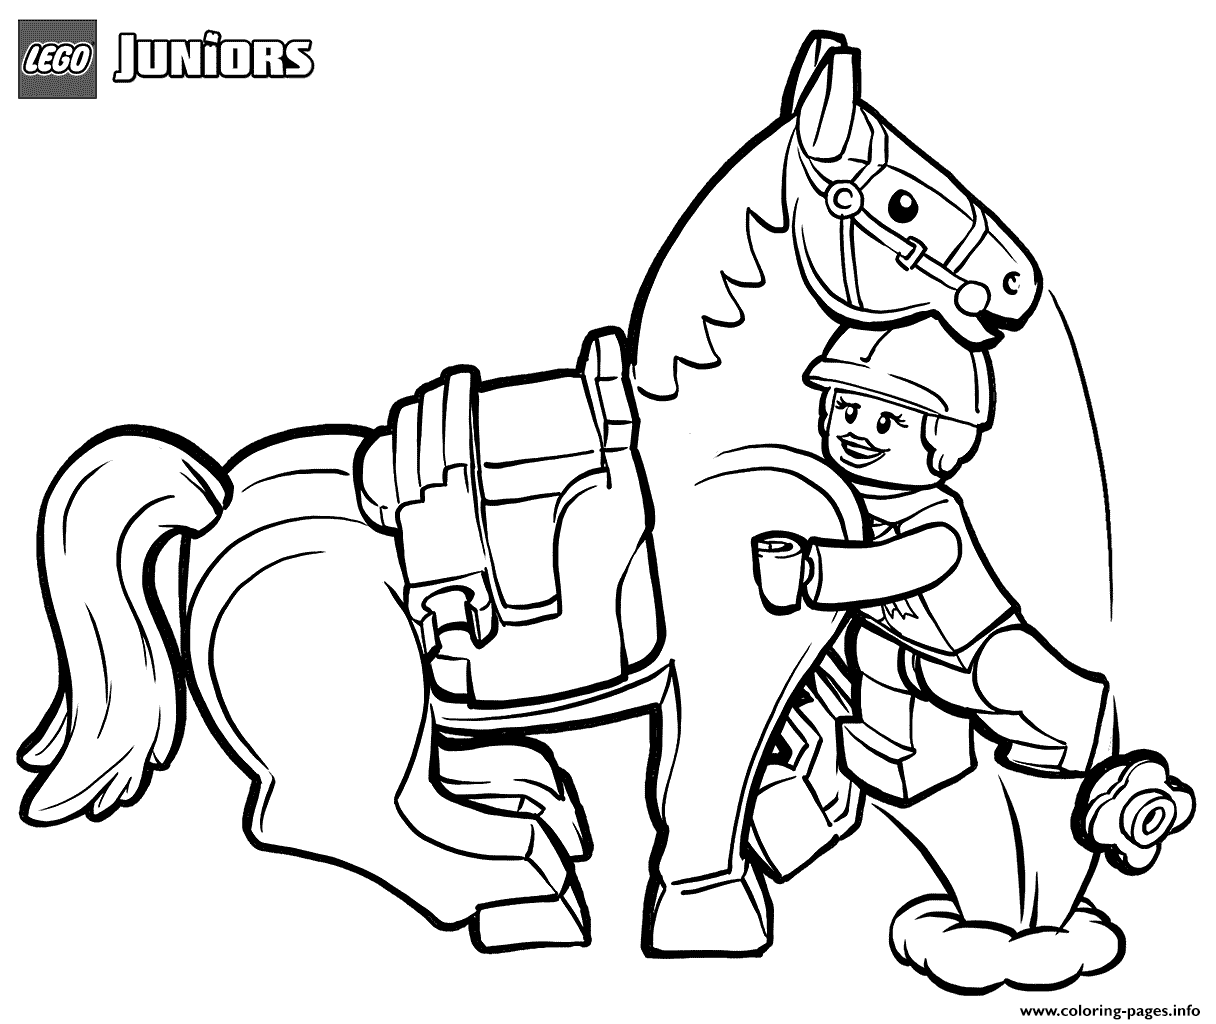 Lego Junior Horse Rider And Horse Coloring Pages Printable